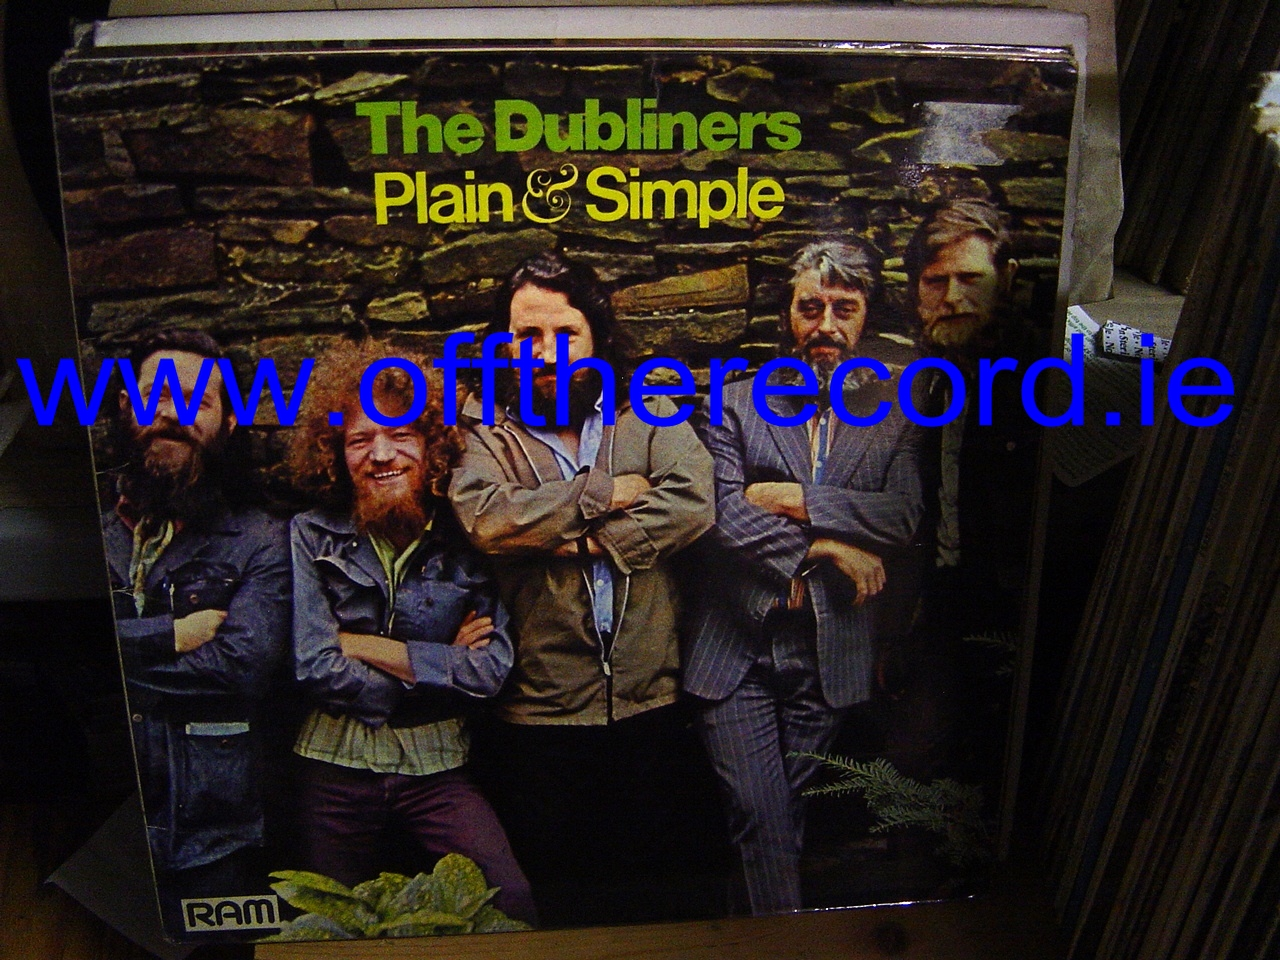 The Dubliners - Plain & Simple - Ram Records